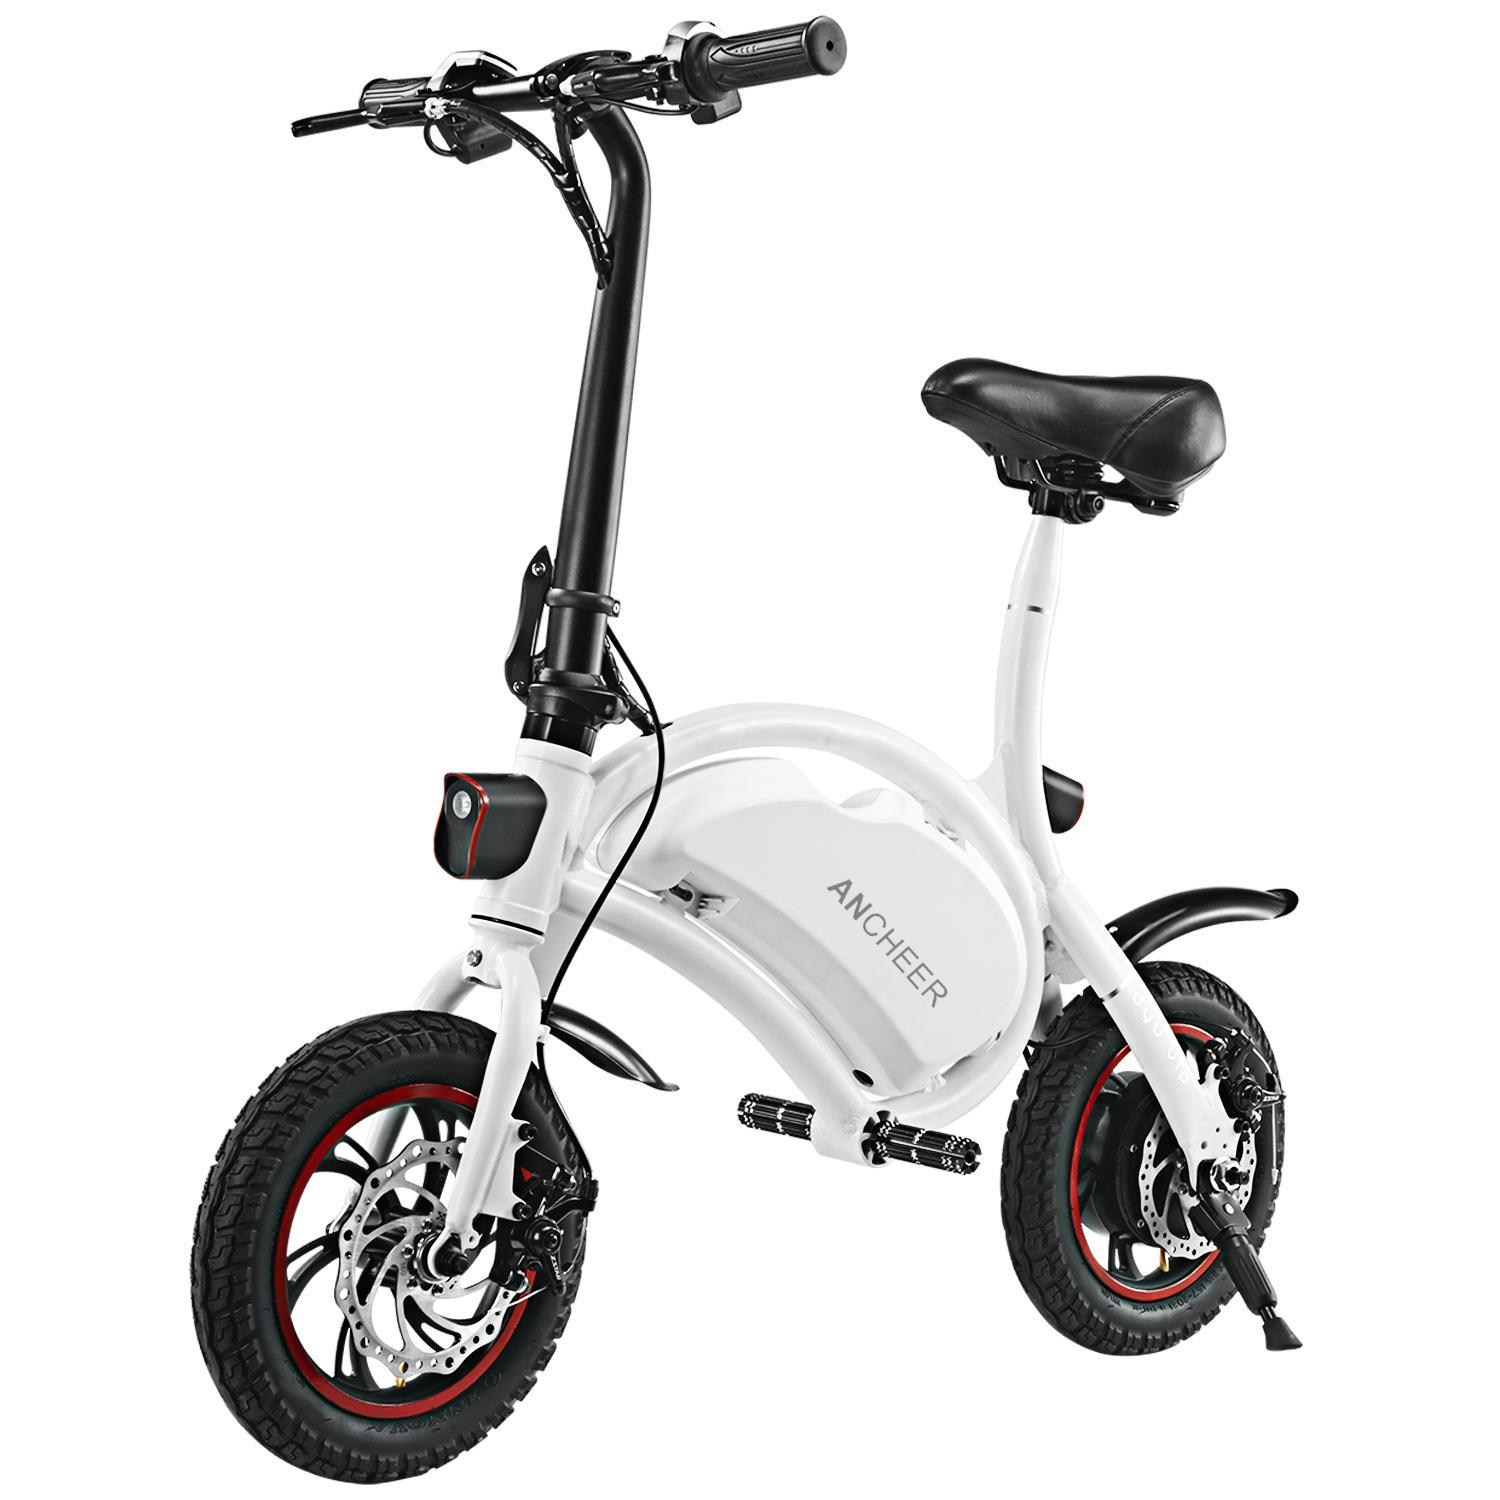 Hifashion 12'' Foldable Adjustable Mountain Bike Electric Power Bicycle with Smart Lithium Battery HFON by